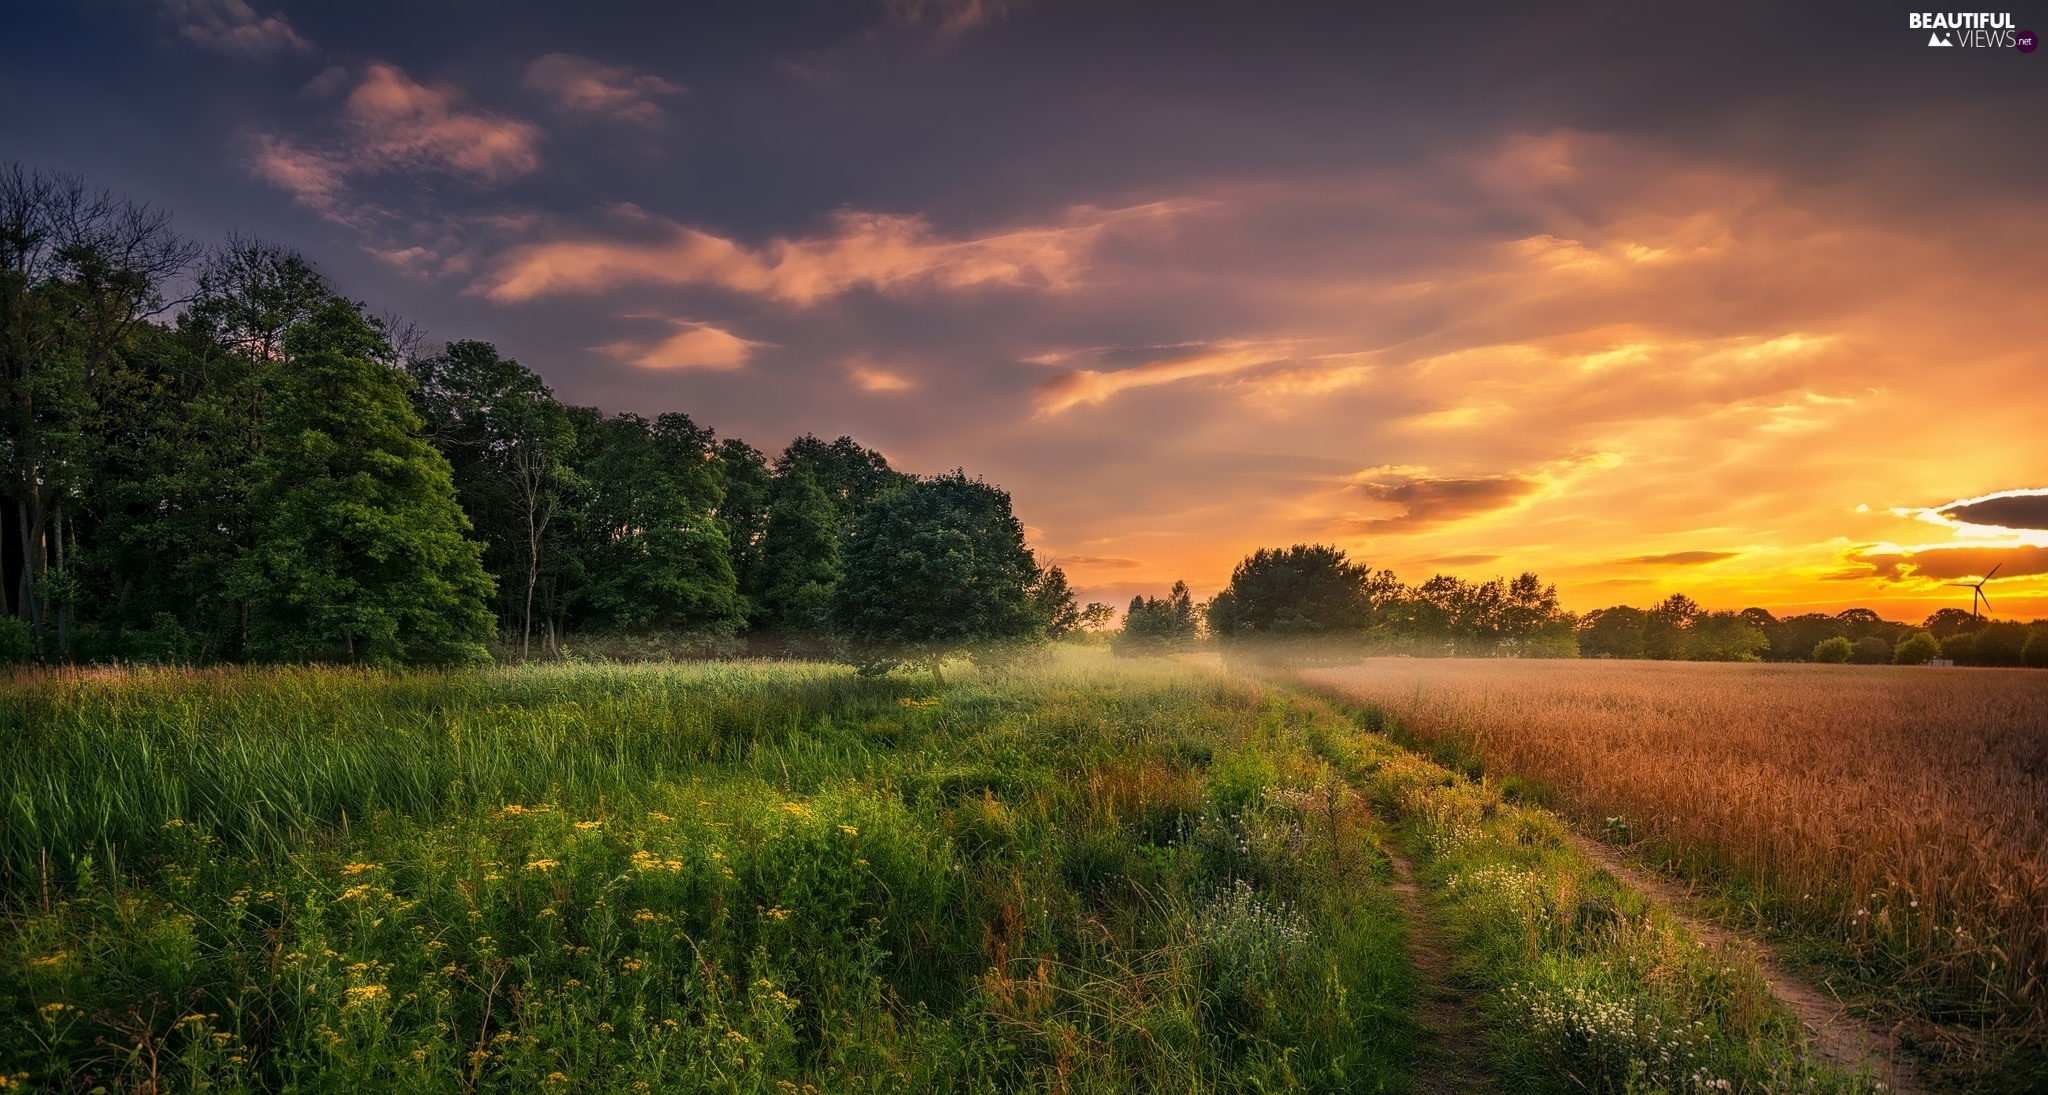 trees, viewes, Meadow, Sunrise, field